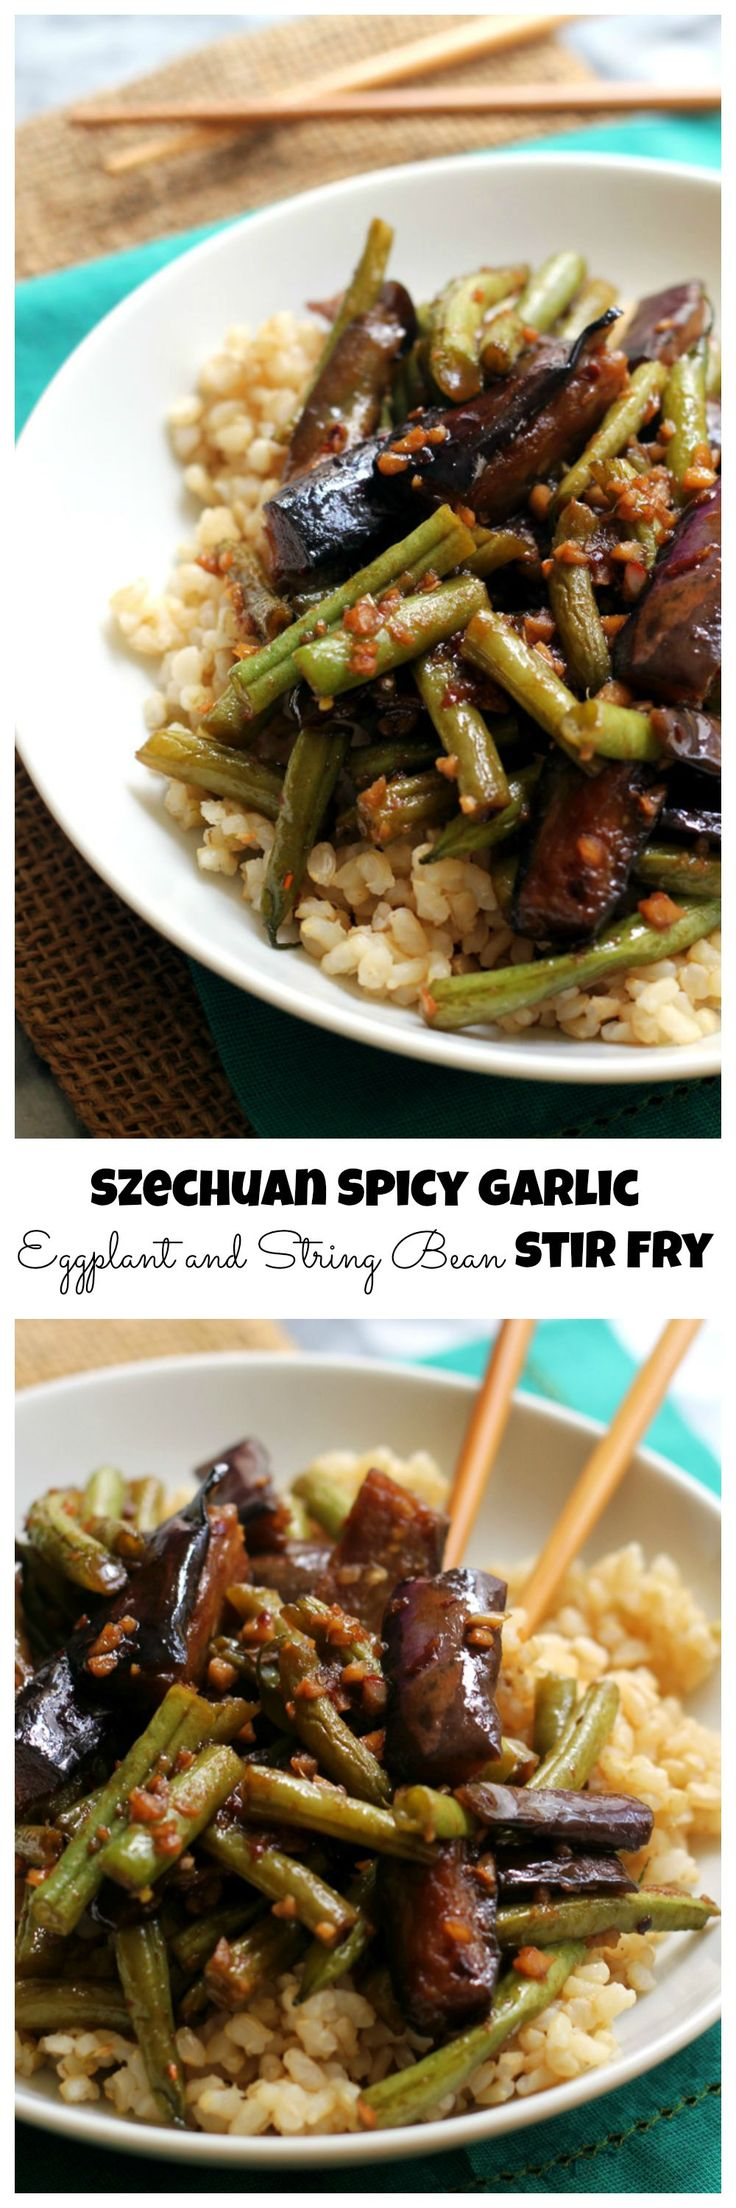 Take-out at home takes less than 30 minutes when you're making this Szechuan spicy garlic eggplant and string bean stir fry!